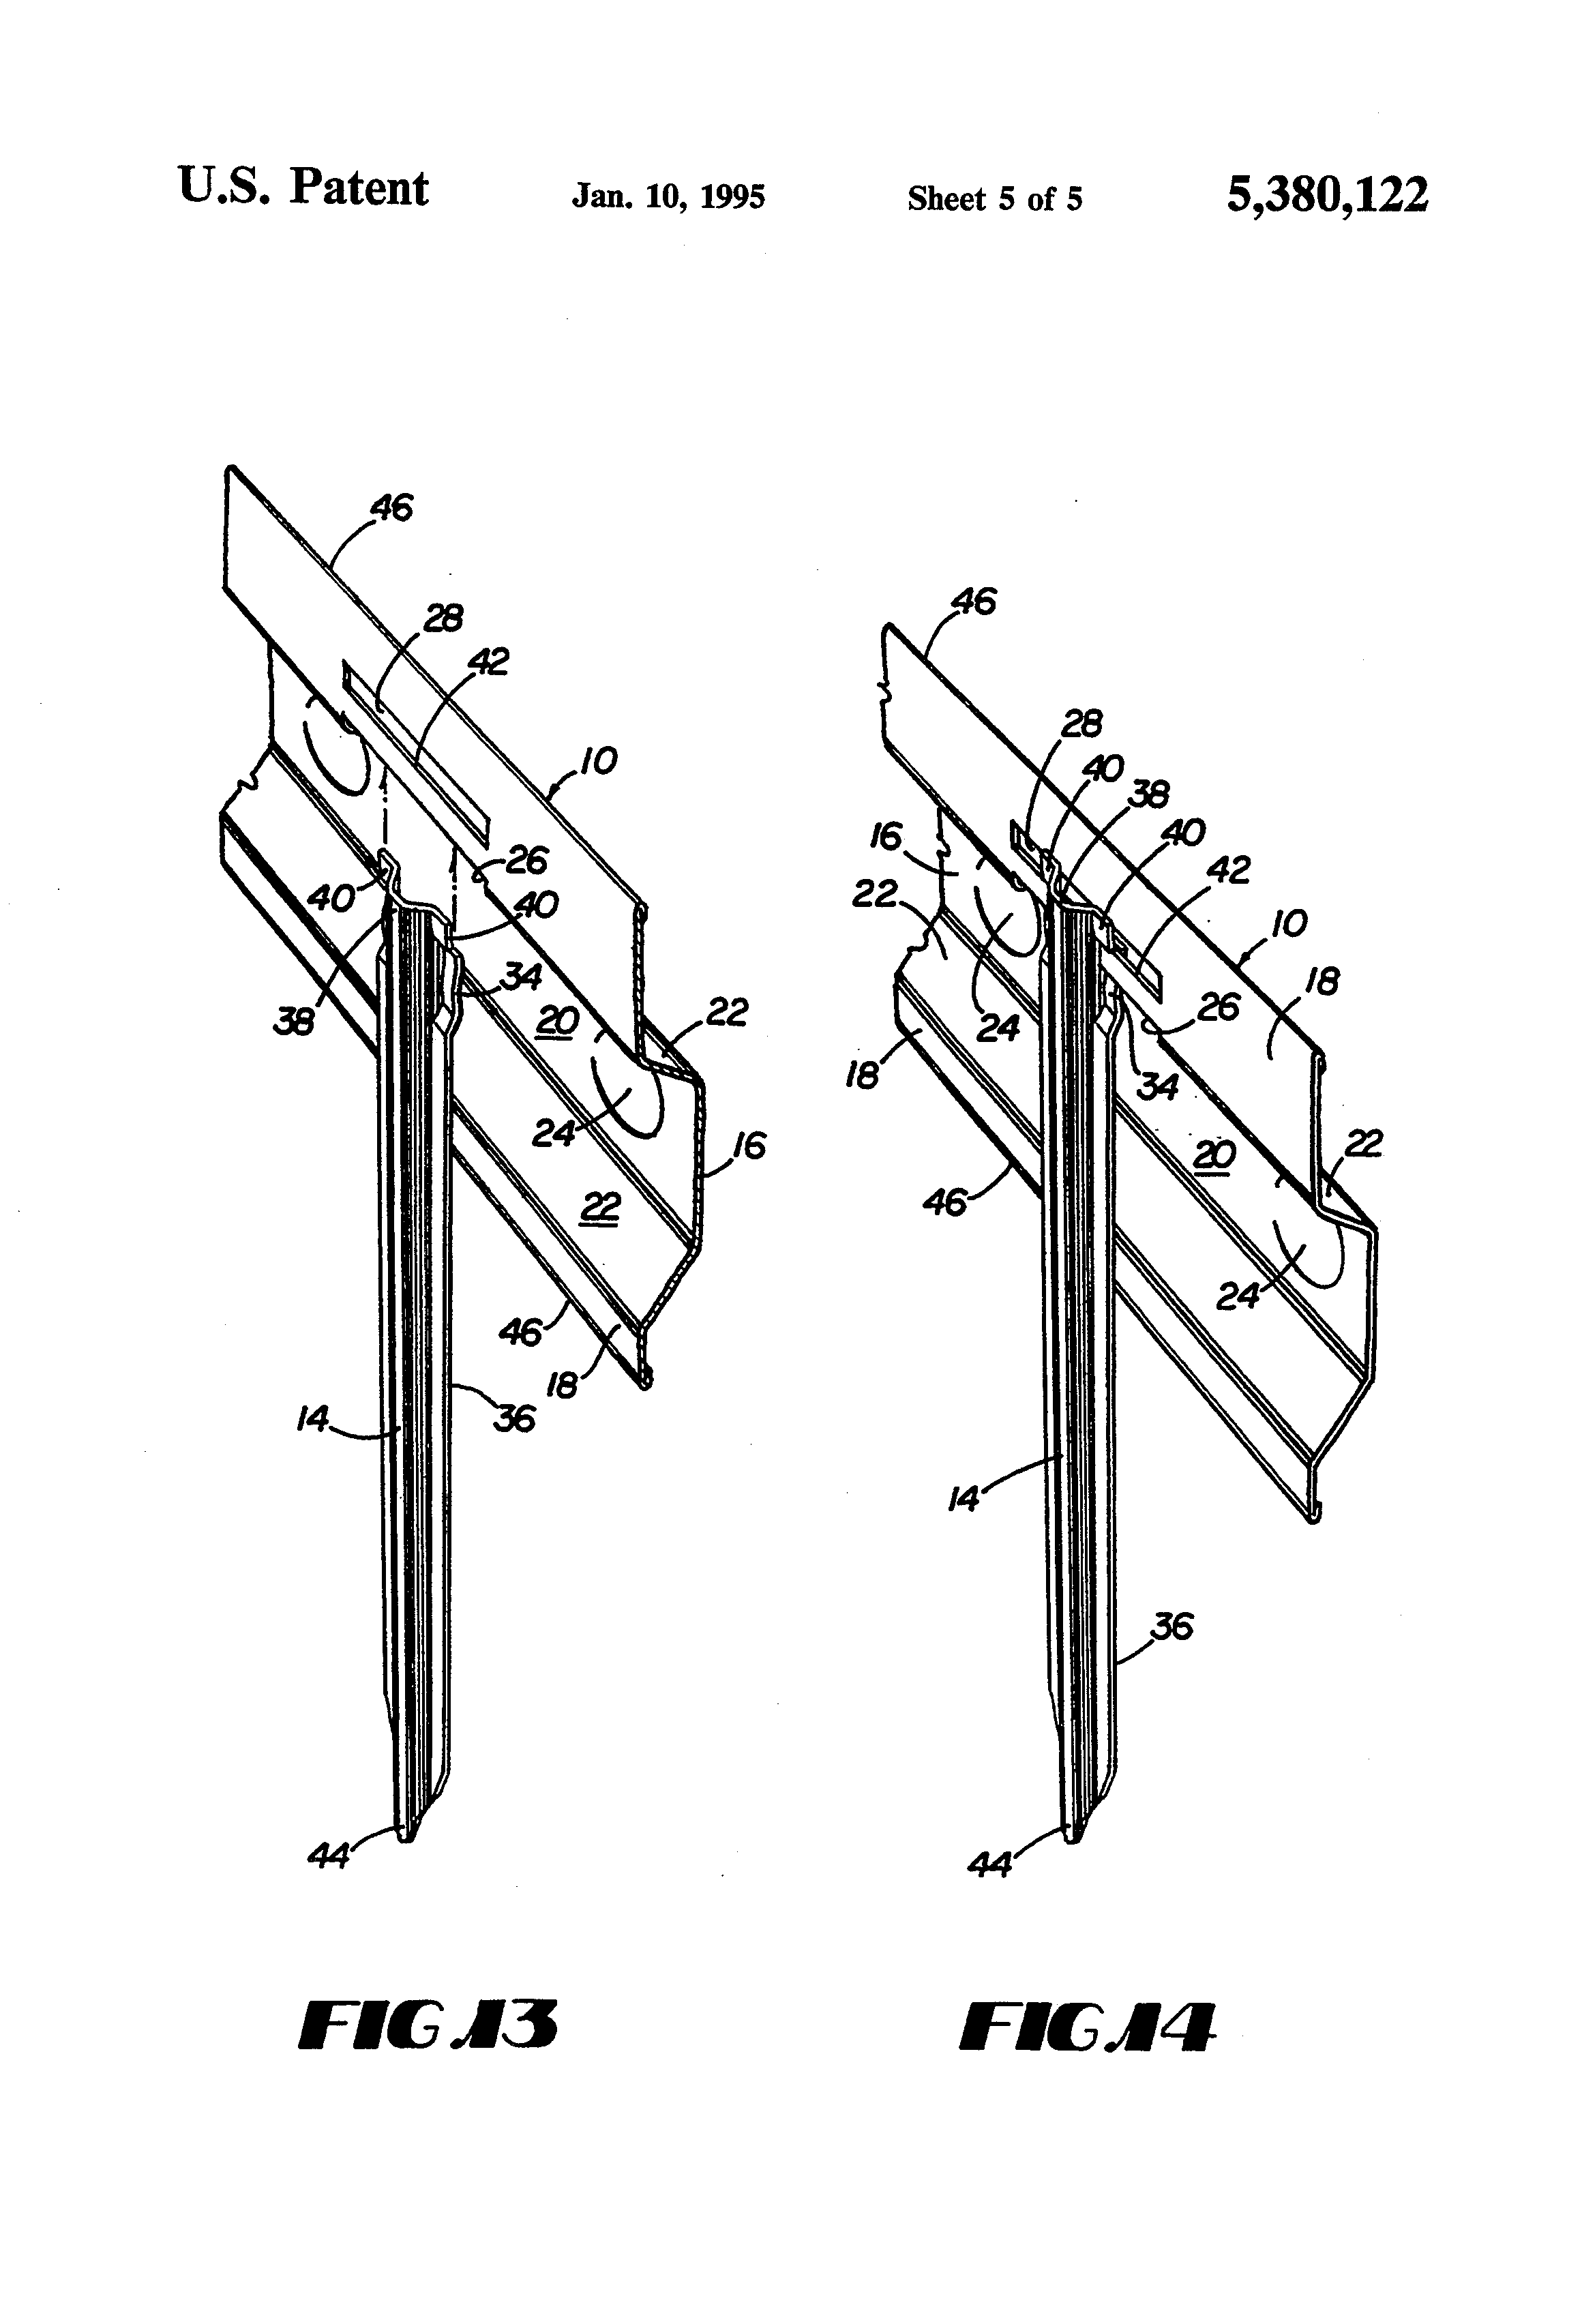 Joint Key Concrete : Patent us joint forms for concrete slabs and